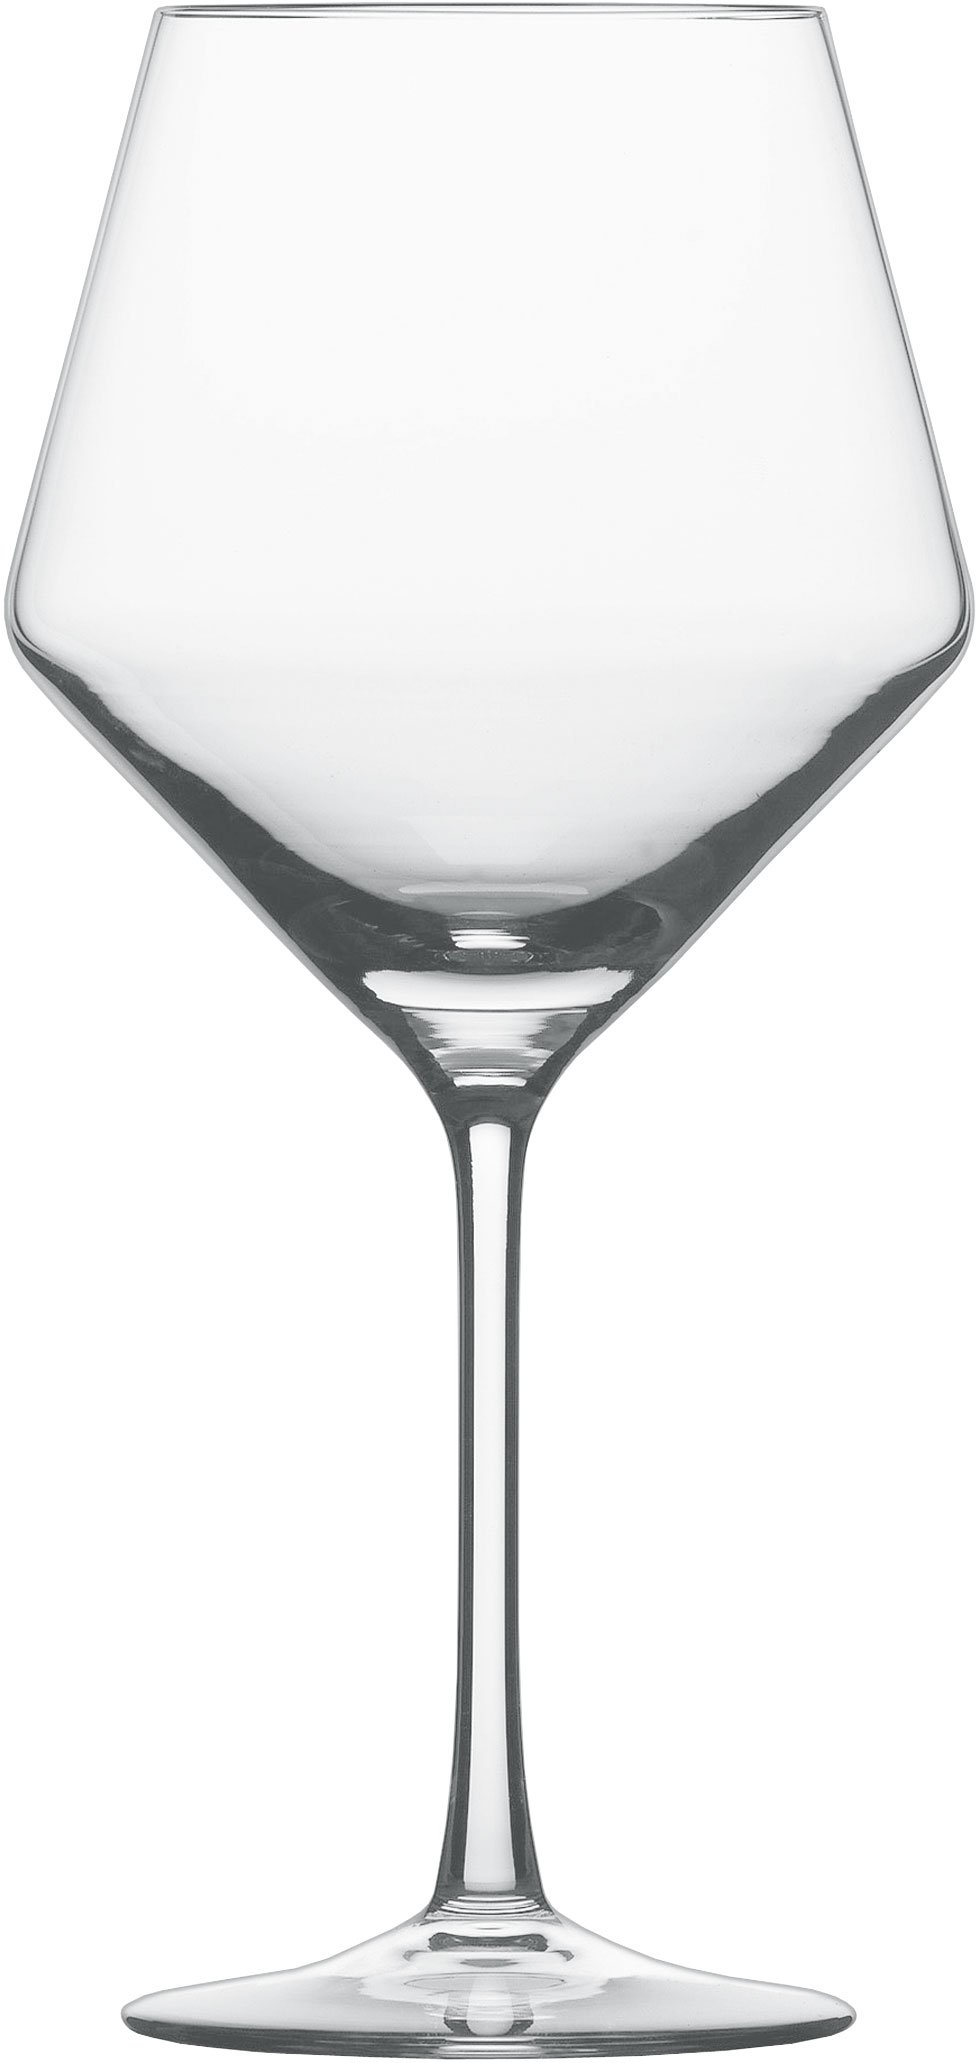 Schott Zwiesel Tritan Crystal Glass Stemware Pure Collection Burgundy Red Wine Glass, 23.4-Ounce, Set of 2